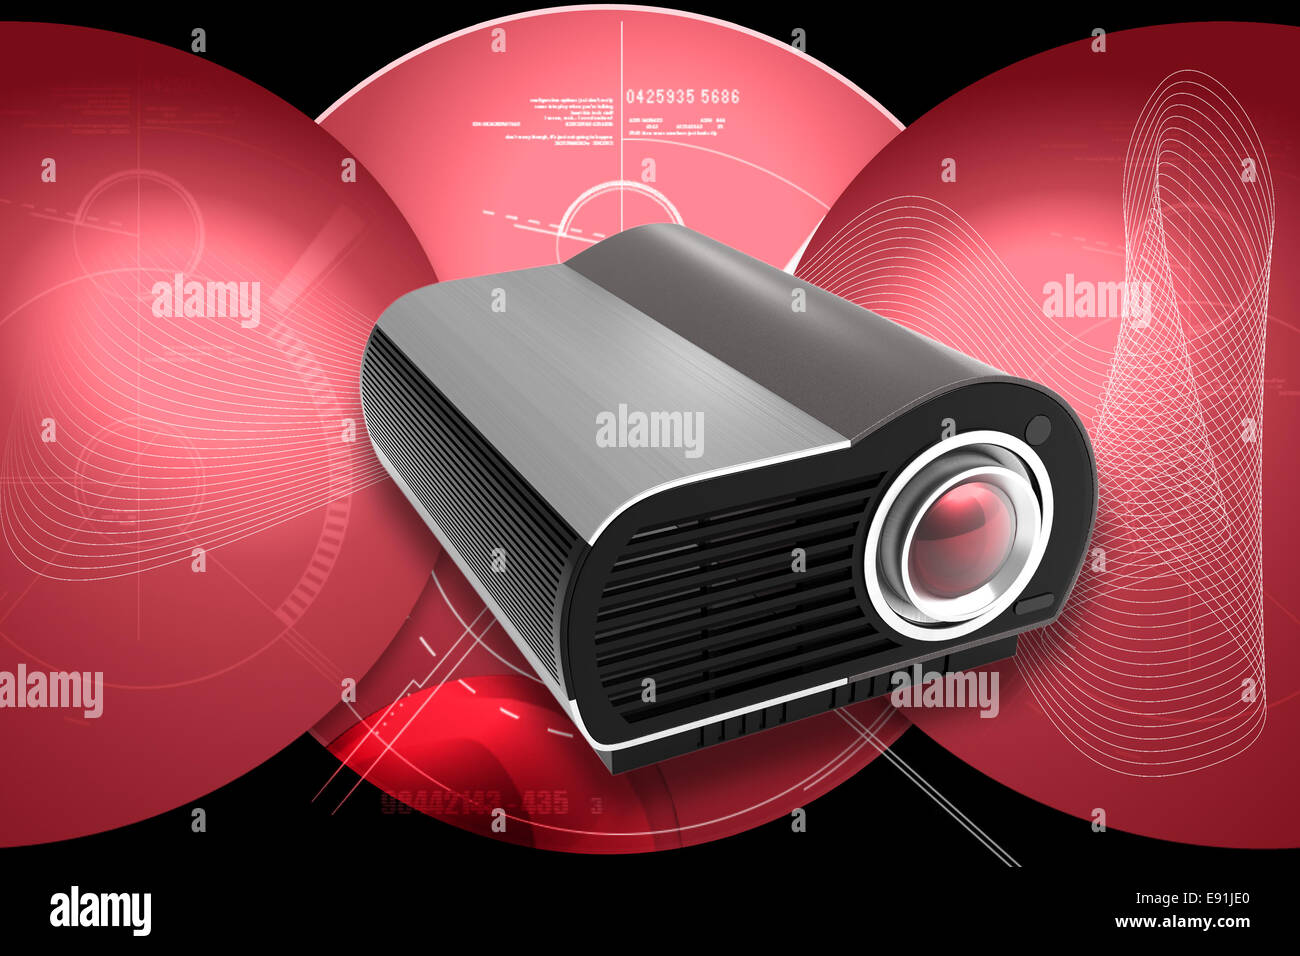 Multimedia Projector - Stock Image